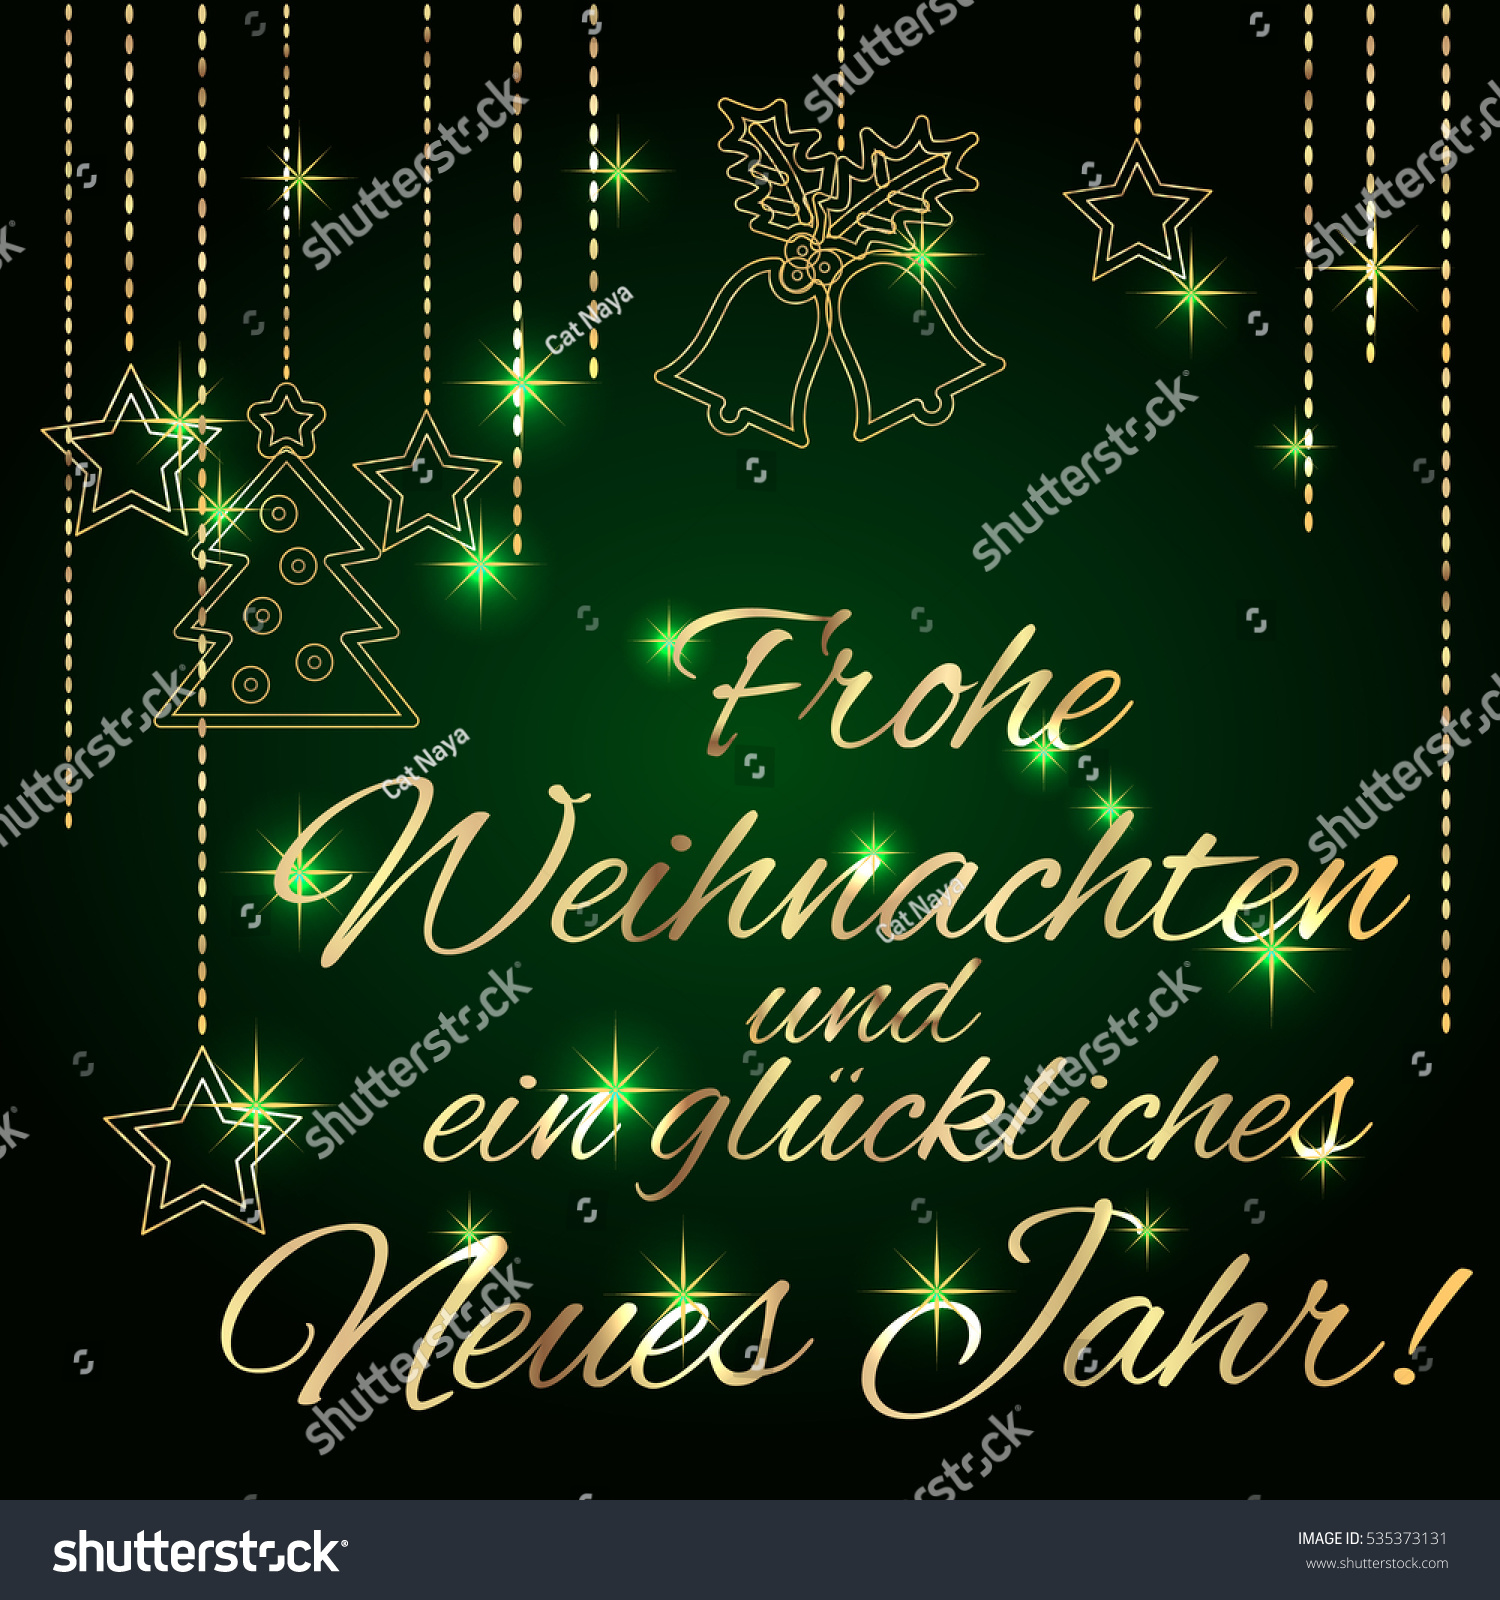 Merry christmas happy new year card stock vector 535373131 merry christmas and happy new year card template with greetings in german language luxury m4hsunfo